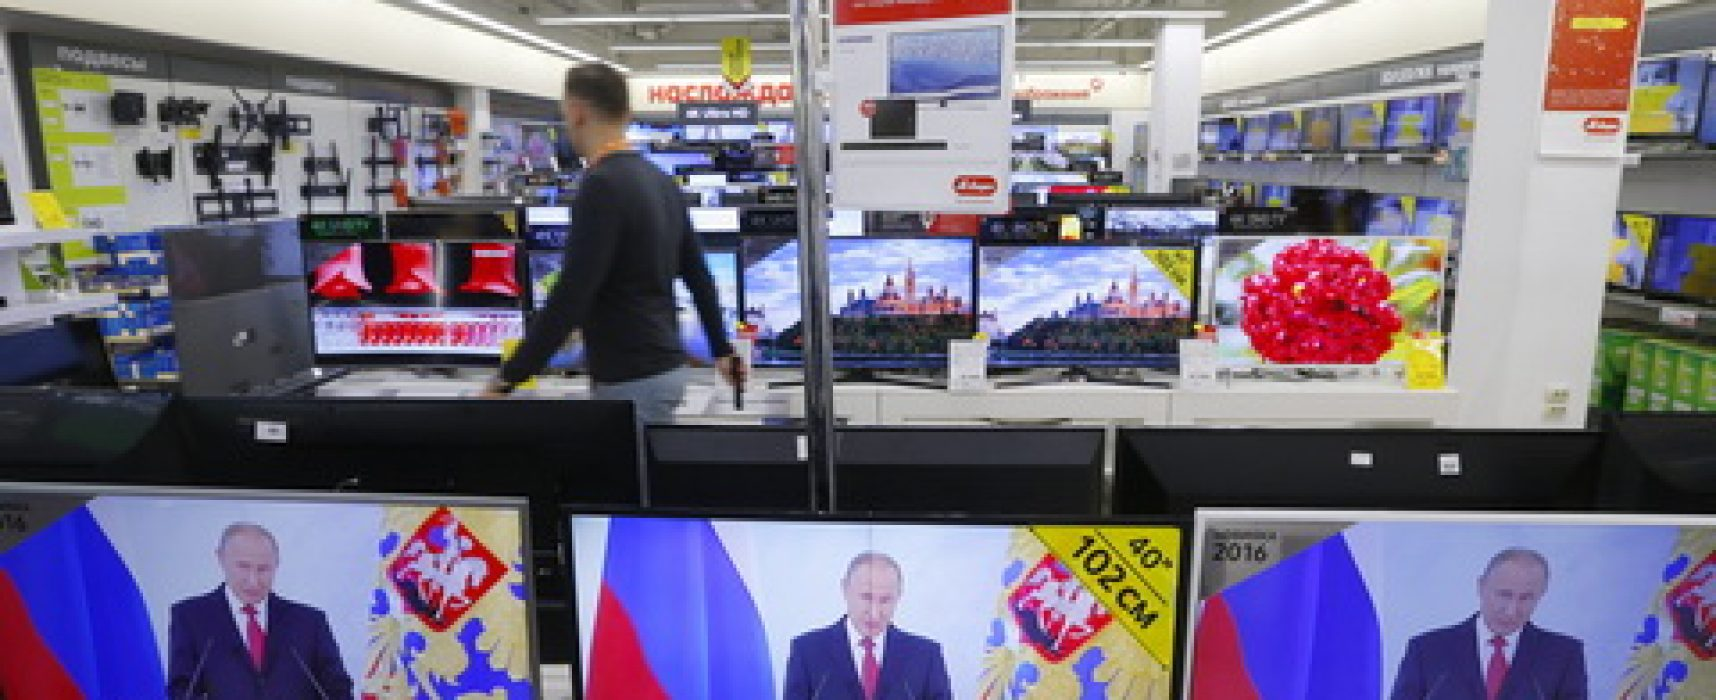 'Chief Beneficiary' of Putin's Aggression in Ukraine and Syria is Moscow TV, New Poll Shows